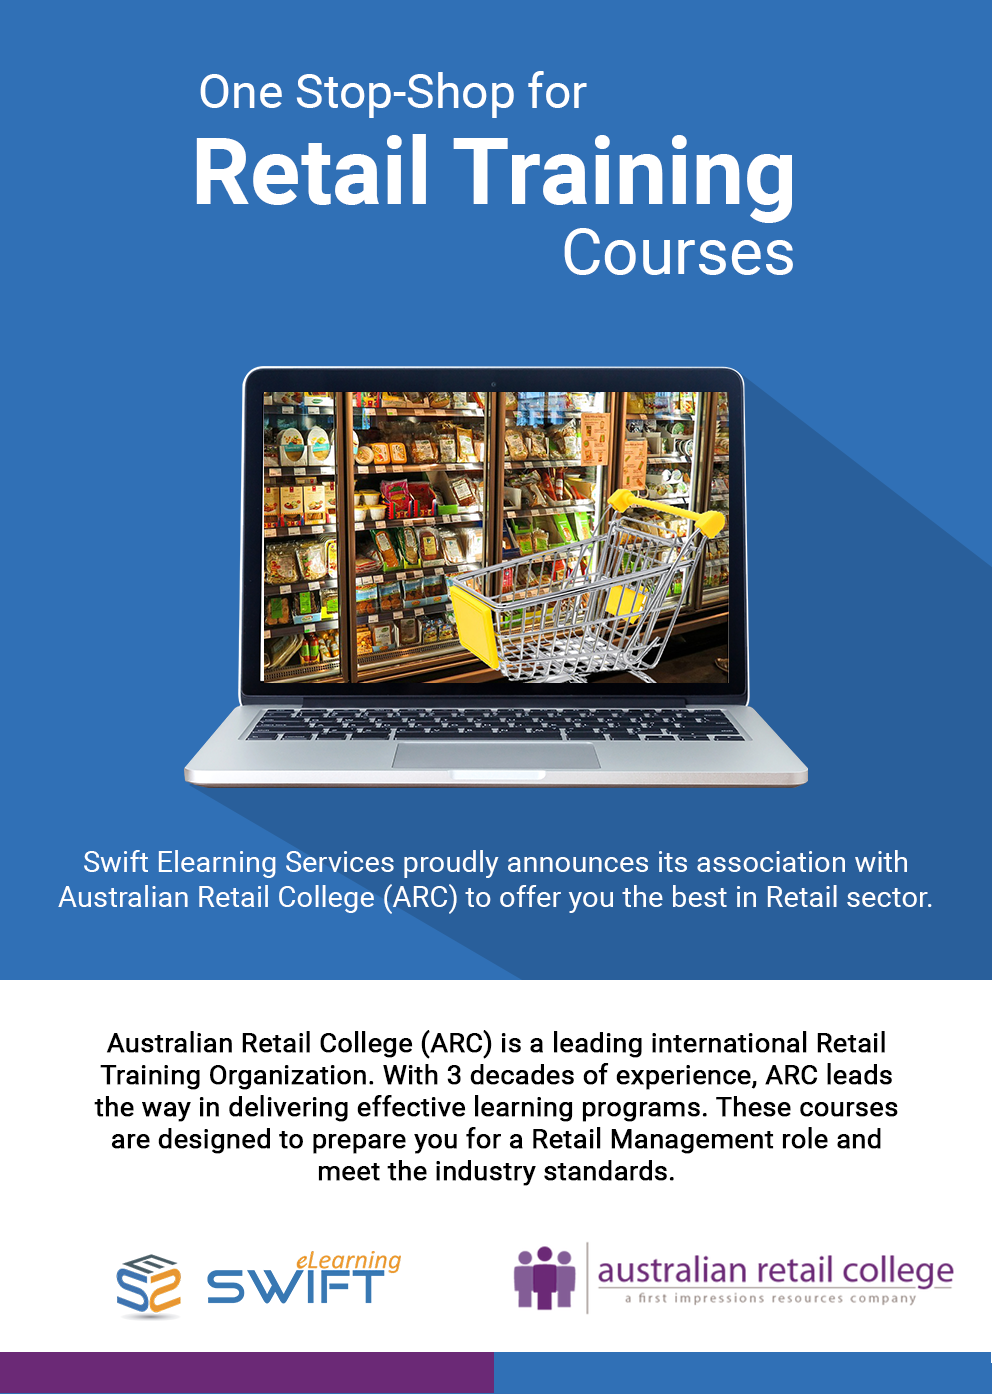 One-Stop-shop-for-Retail-Training-Courses_Swift-elearning